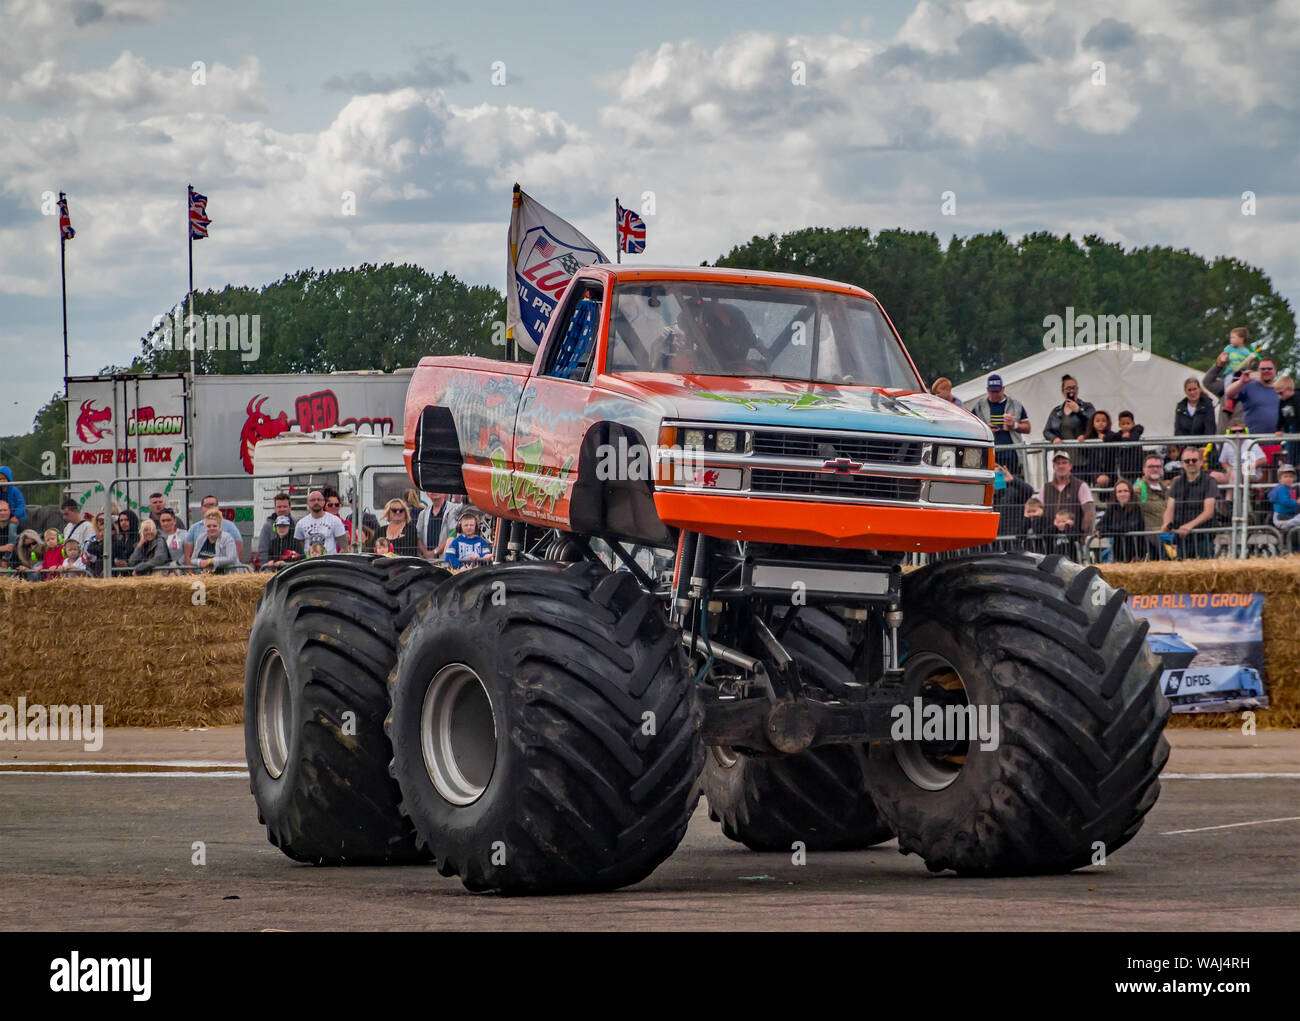 The Podzilla monster truck spinning up its tires during a